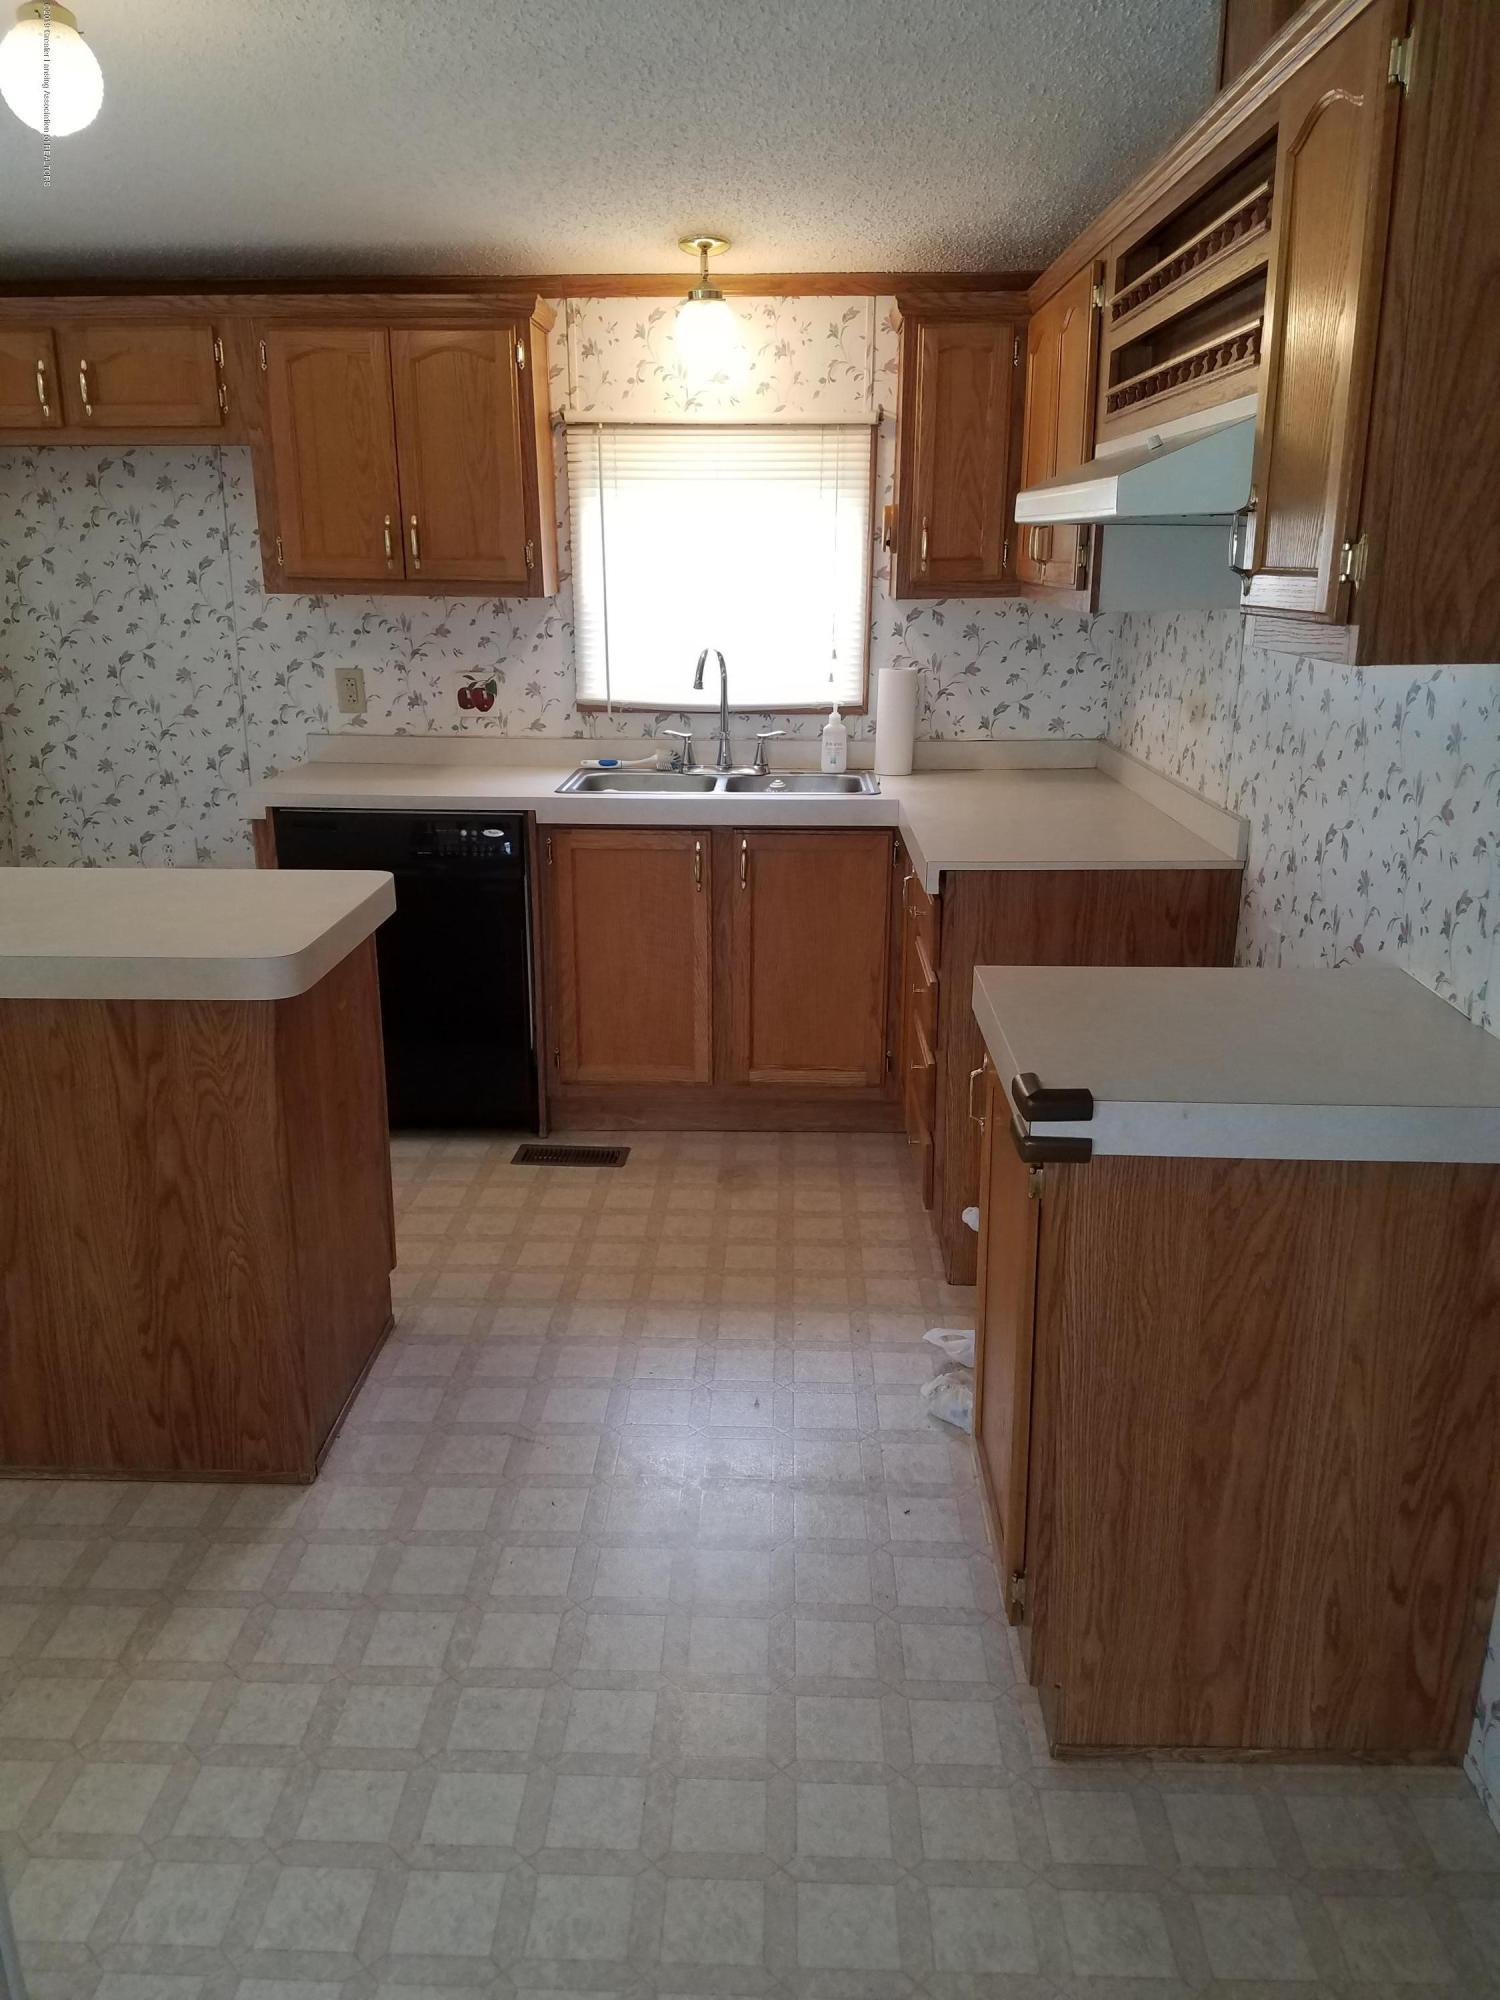 3178 McConnell Hwy - 20190909_145729 - 5